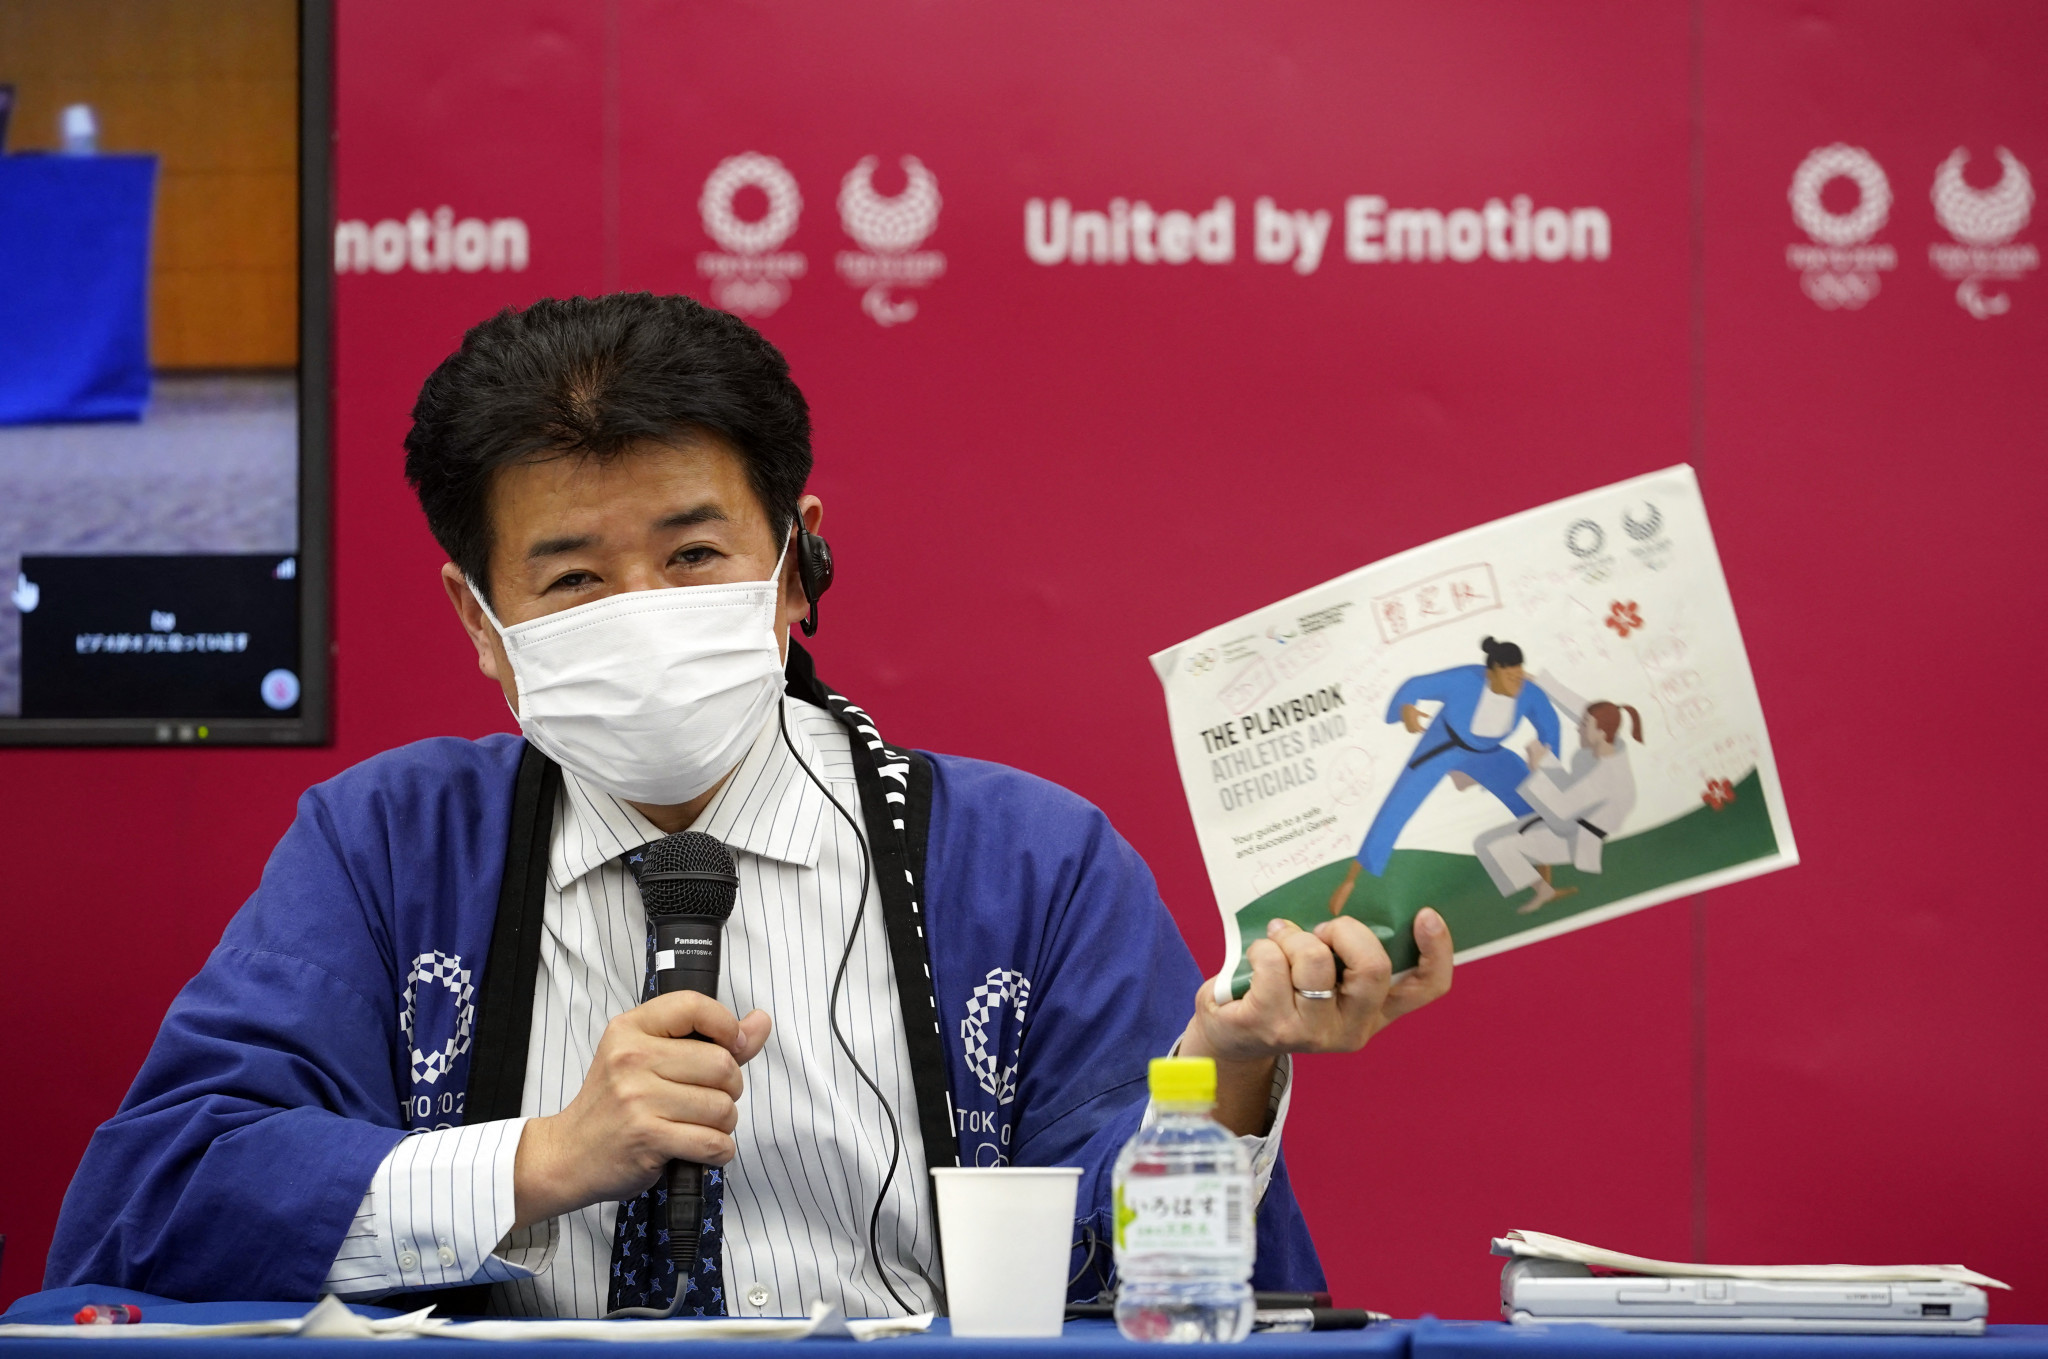 Hidemasa Nakamura, Games delivery officer for Tokyo 2020, claims the COVID-19 countermeasures are